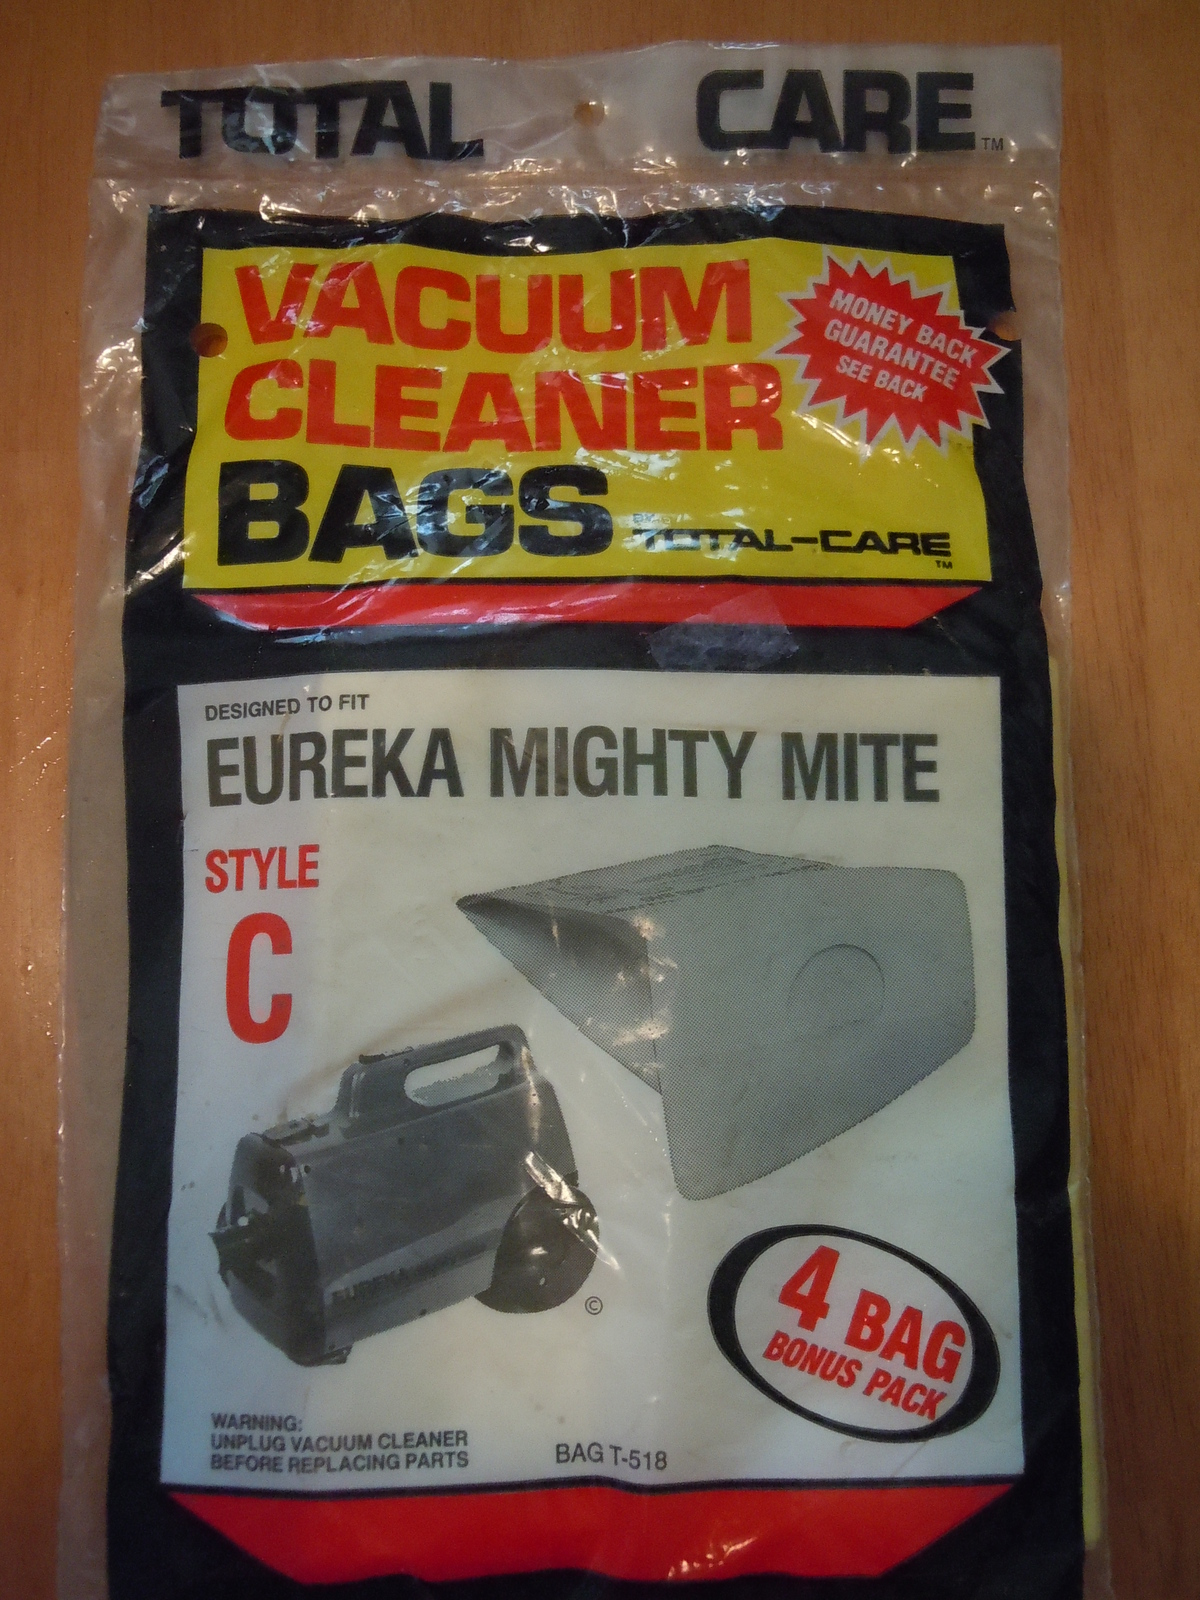 Eureka Mighty Mite Vacuum Cleaner Bags